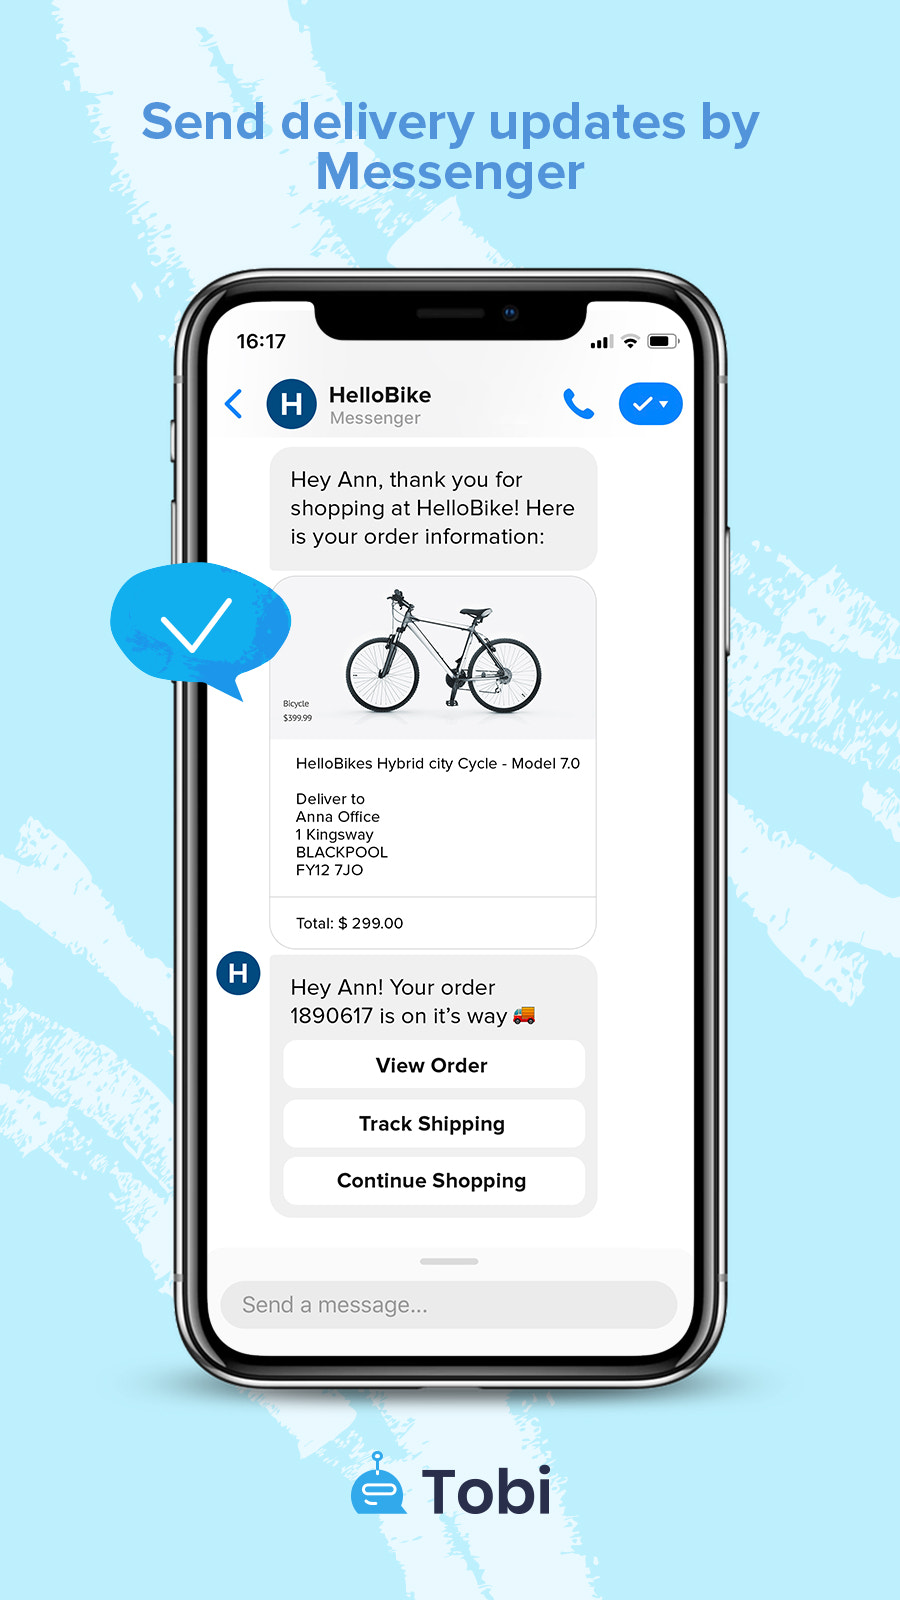 Facebook Messenger Delivery Updates message preview by Tobi